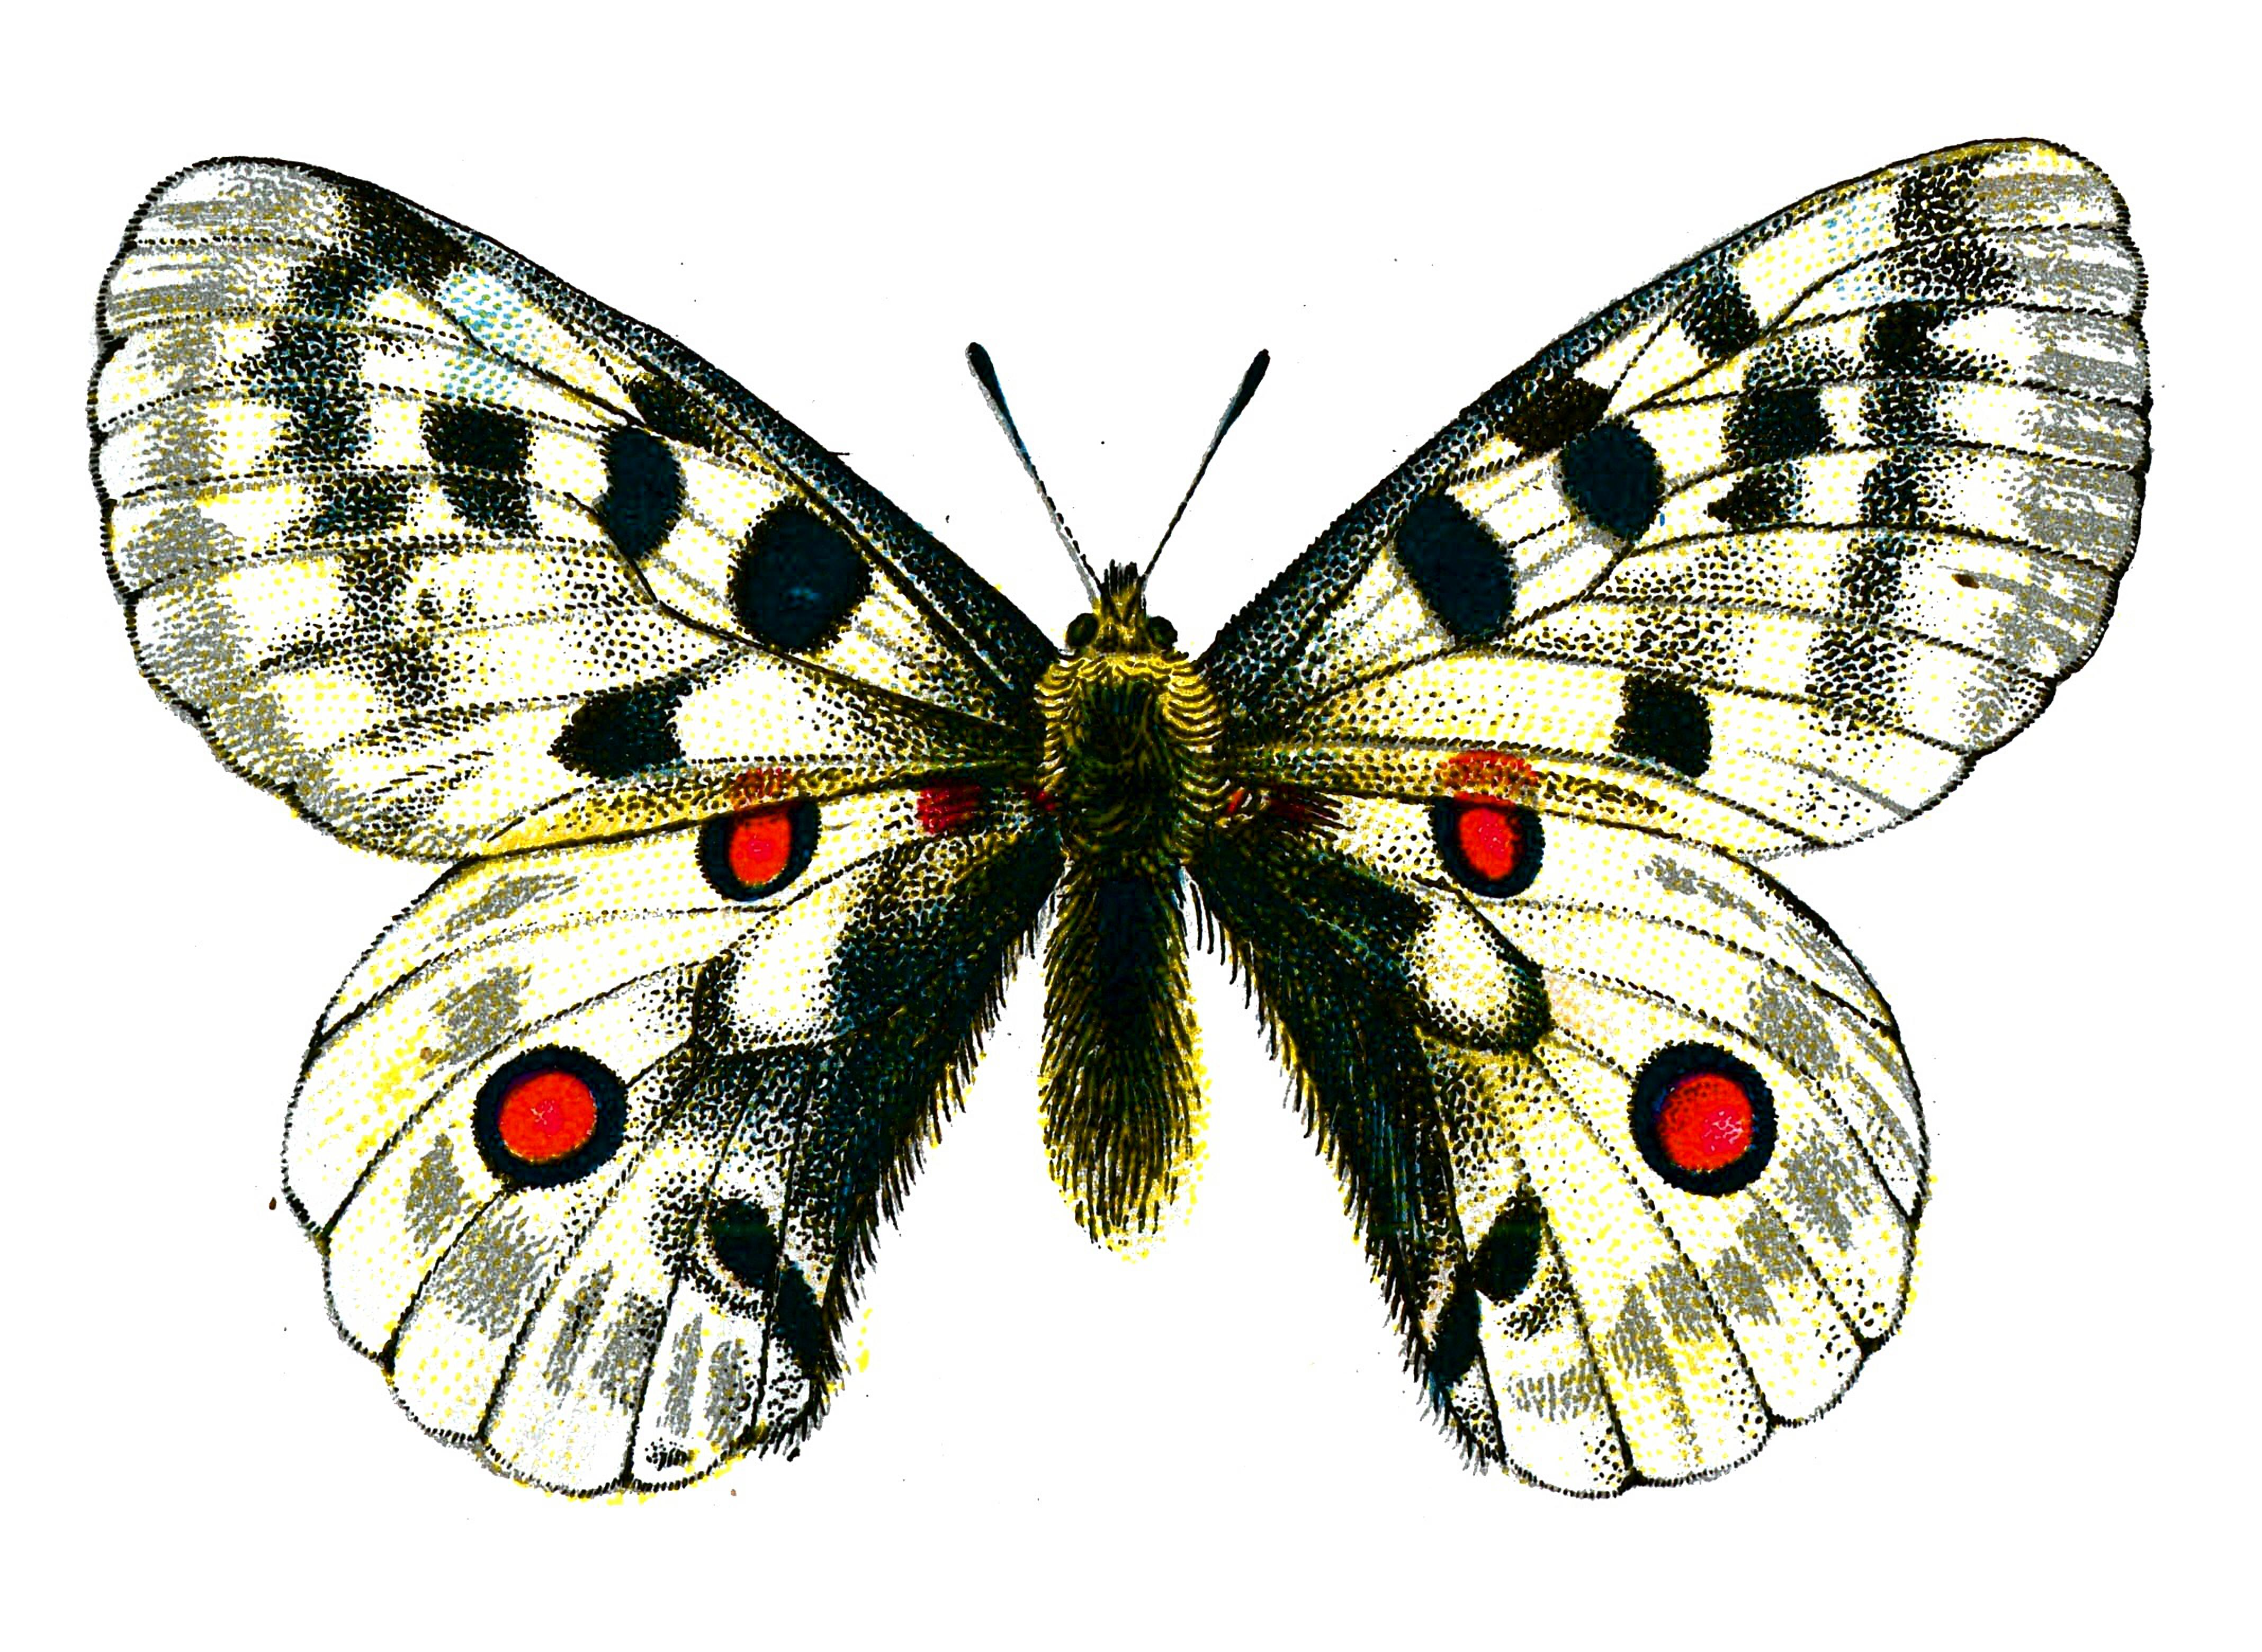 Public domain butterfly clipart.